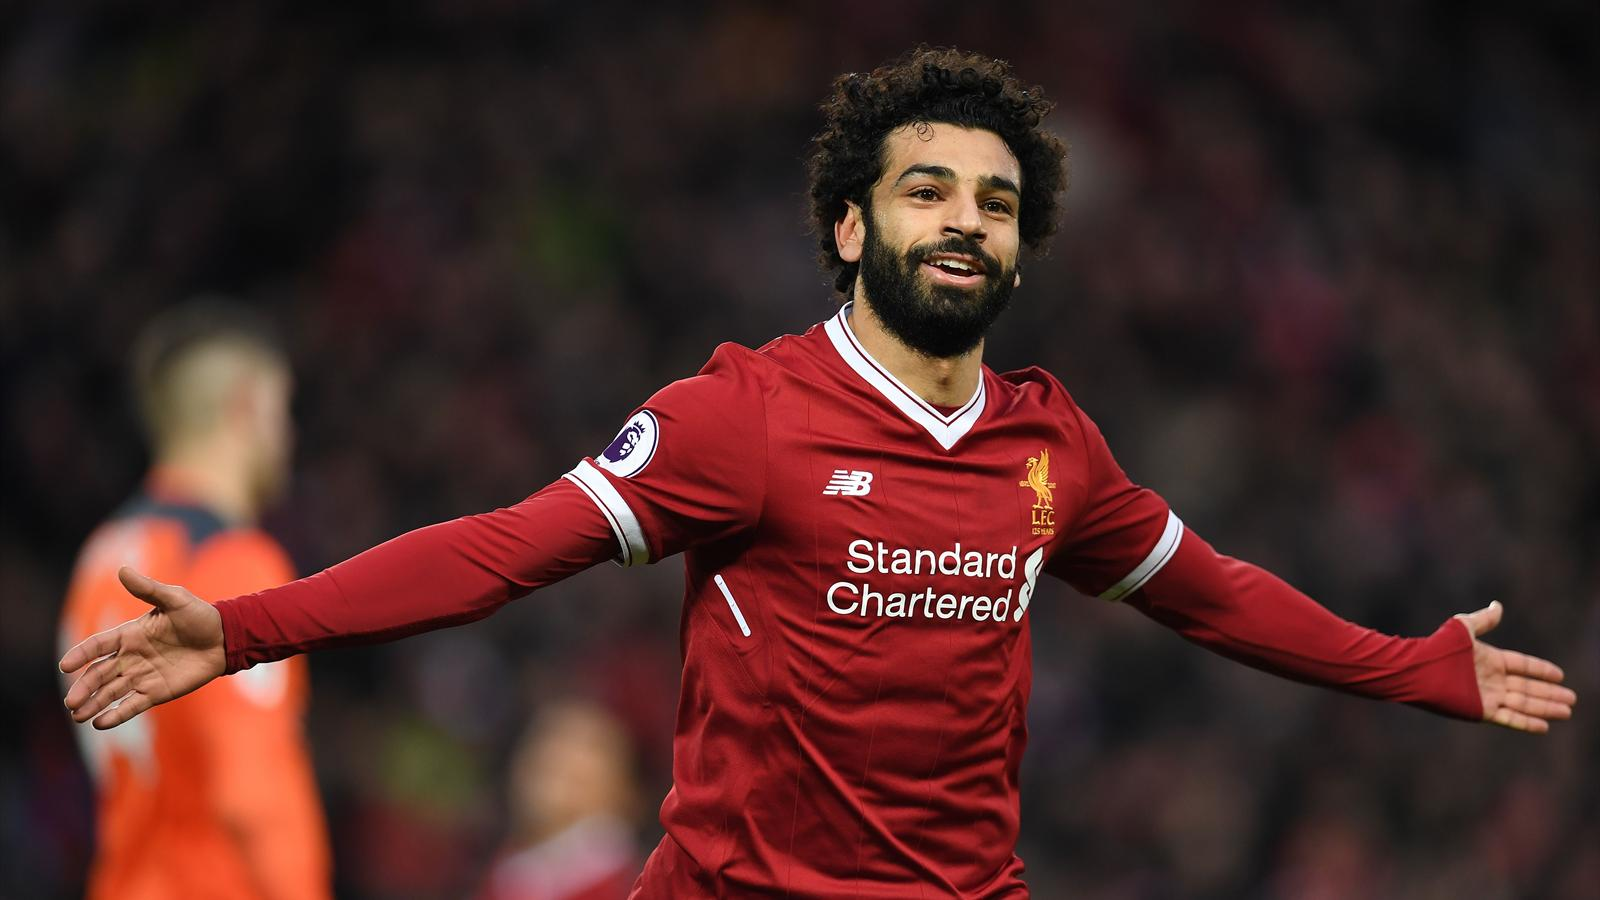 Jurgen Klopp keen to carefully manage Mohamed Salah's workload over festive period - Premier ...